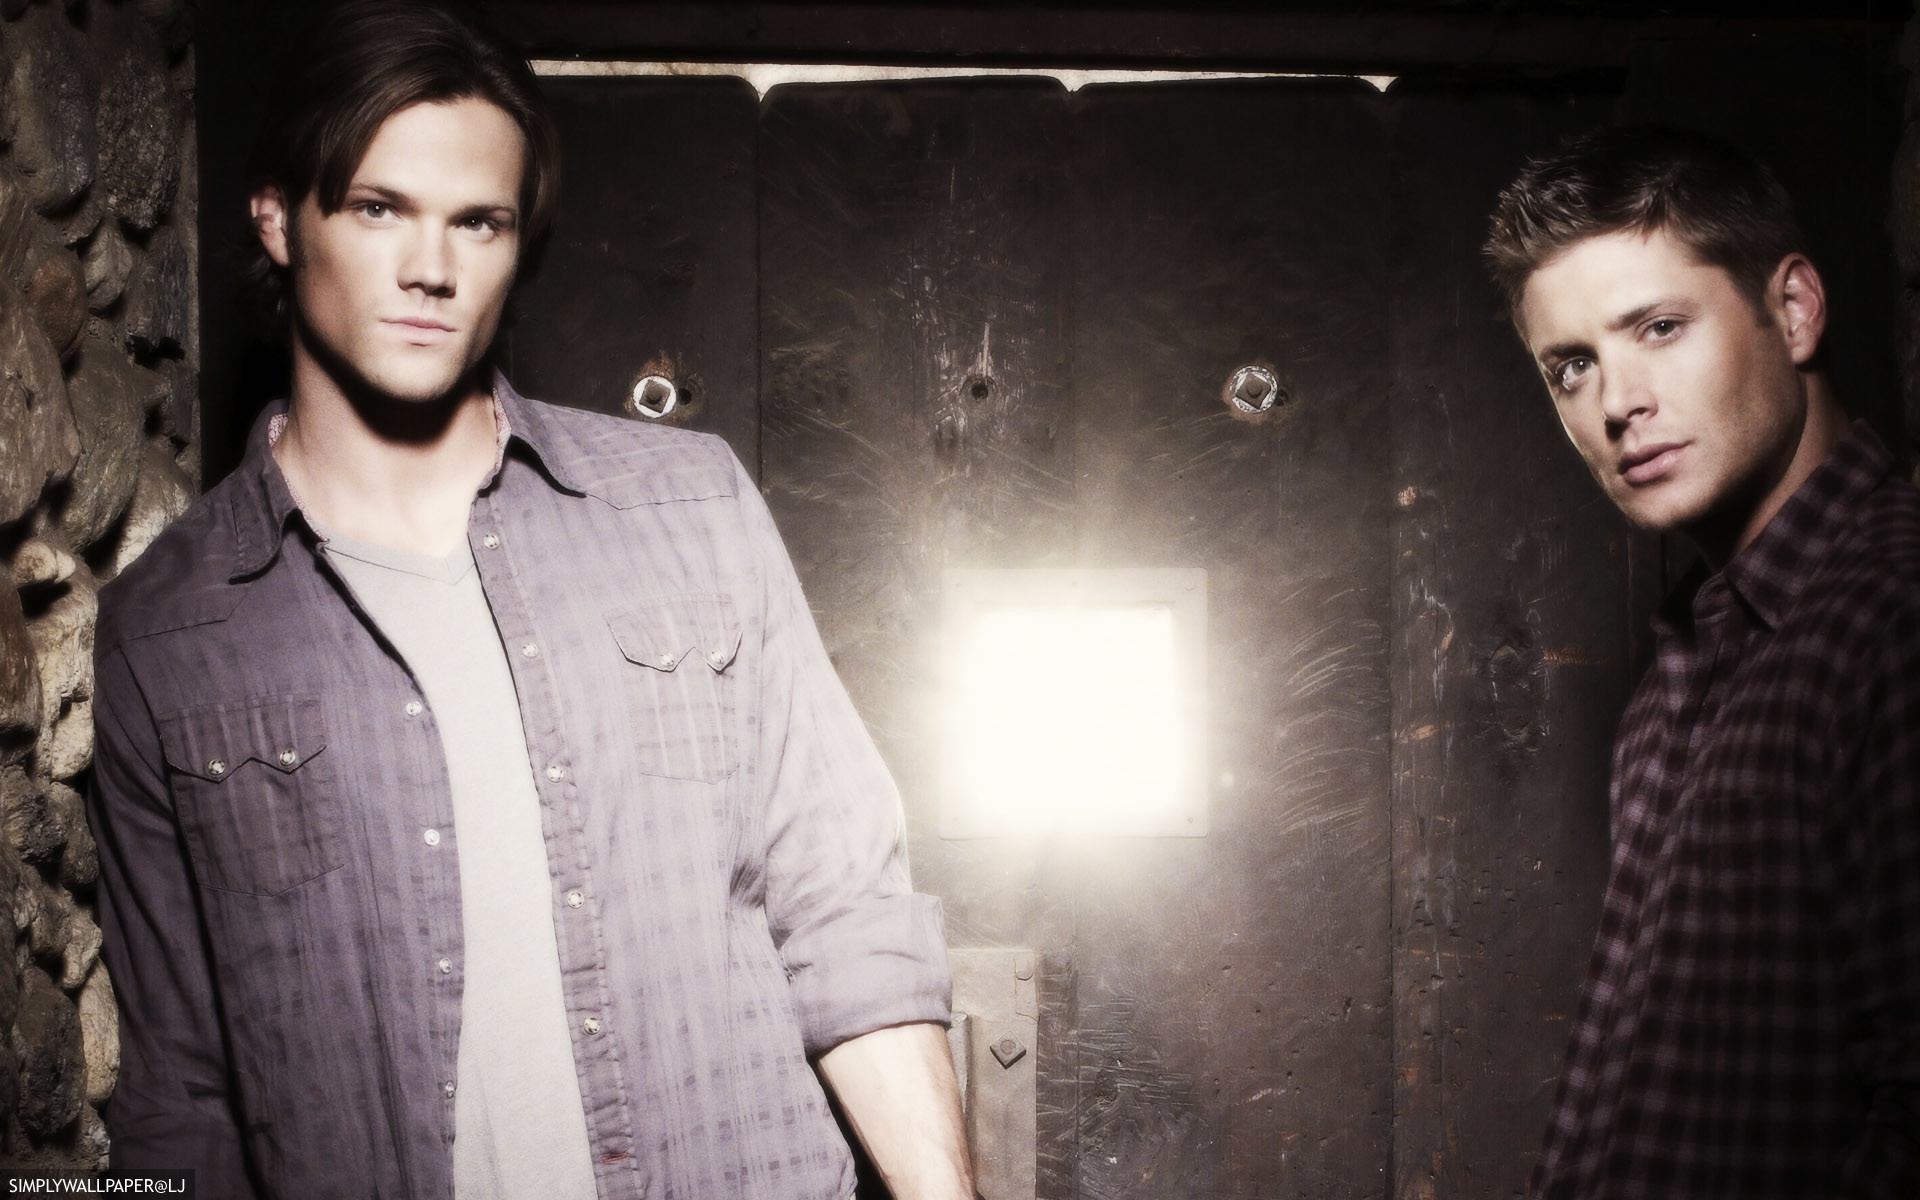 1920x1200 Supernatural desktop background / wallpaper - Sam and Dean Winchester -  credit: simplywallpaper@historyjunkie